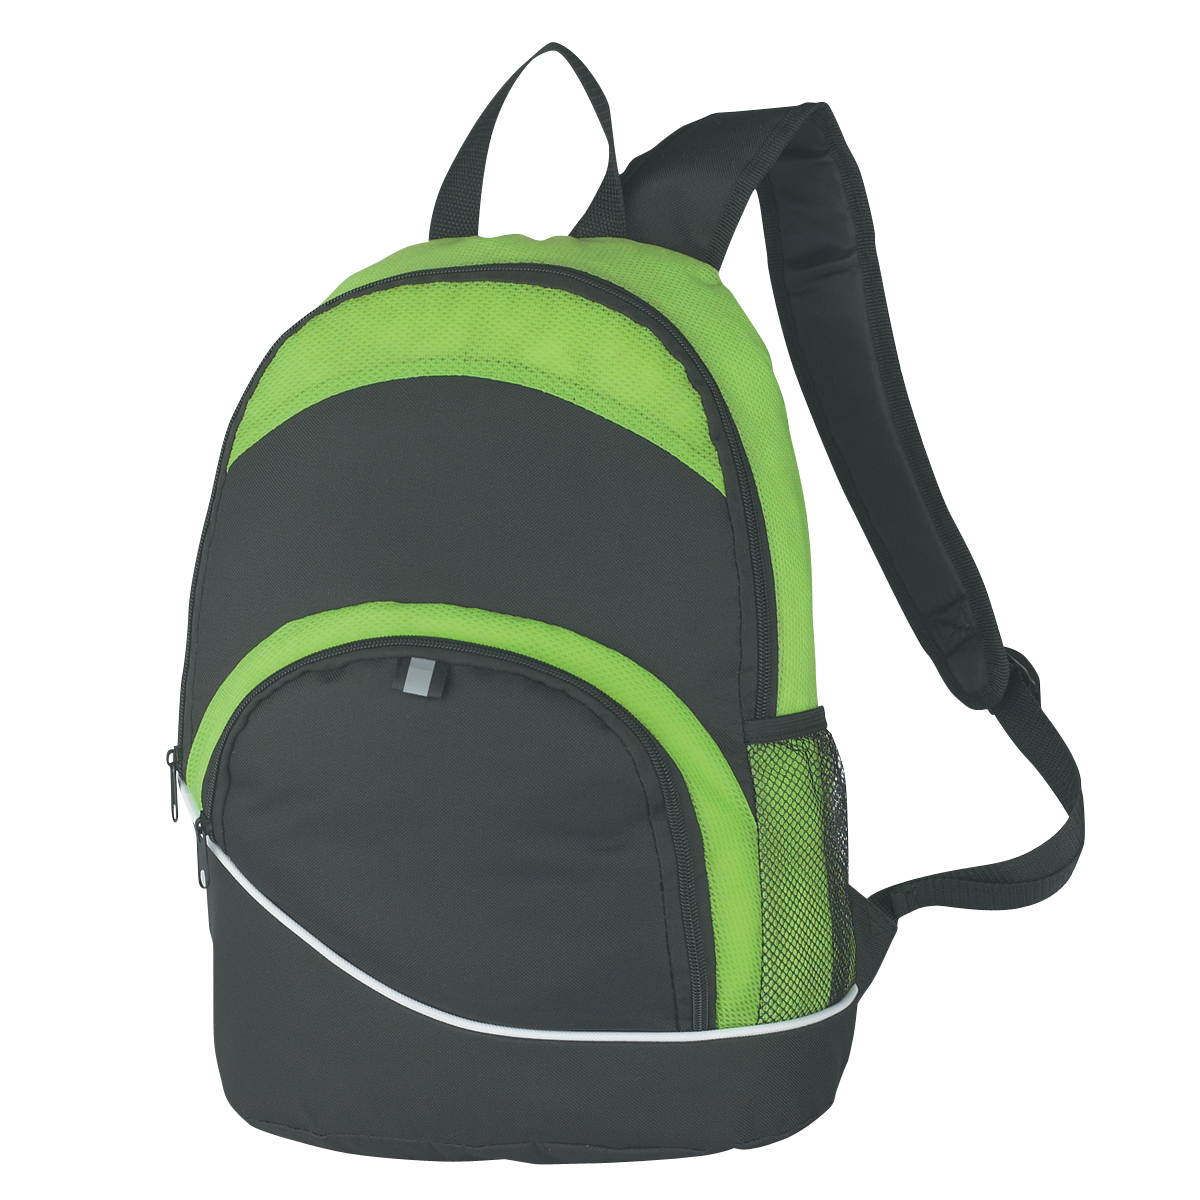 Lime Green - Back in Stock 10/25/21 Curve Backpack